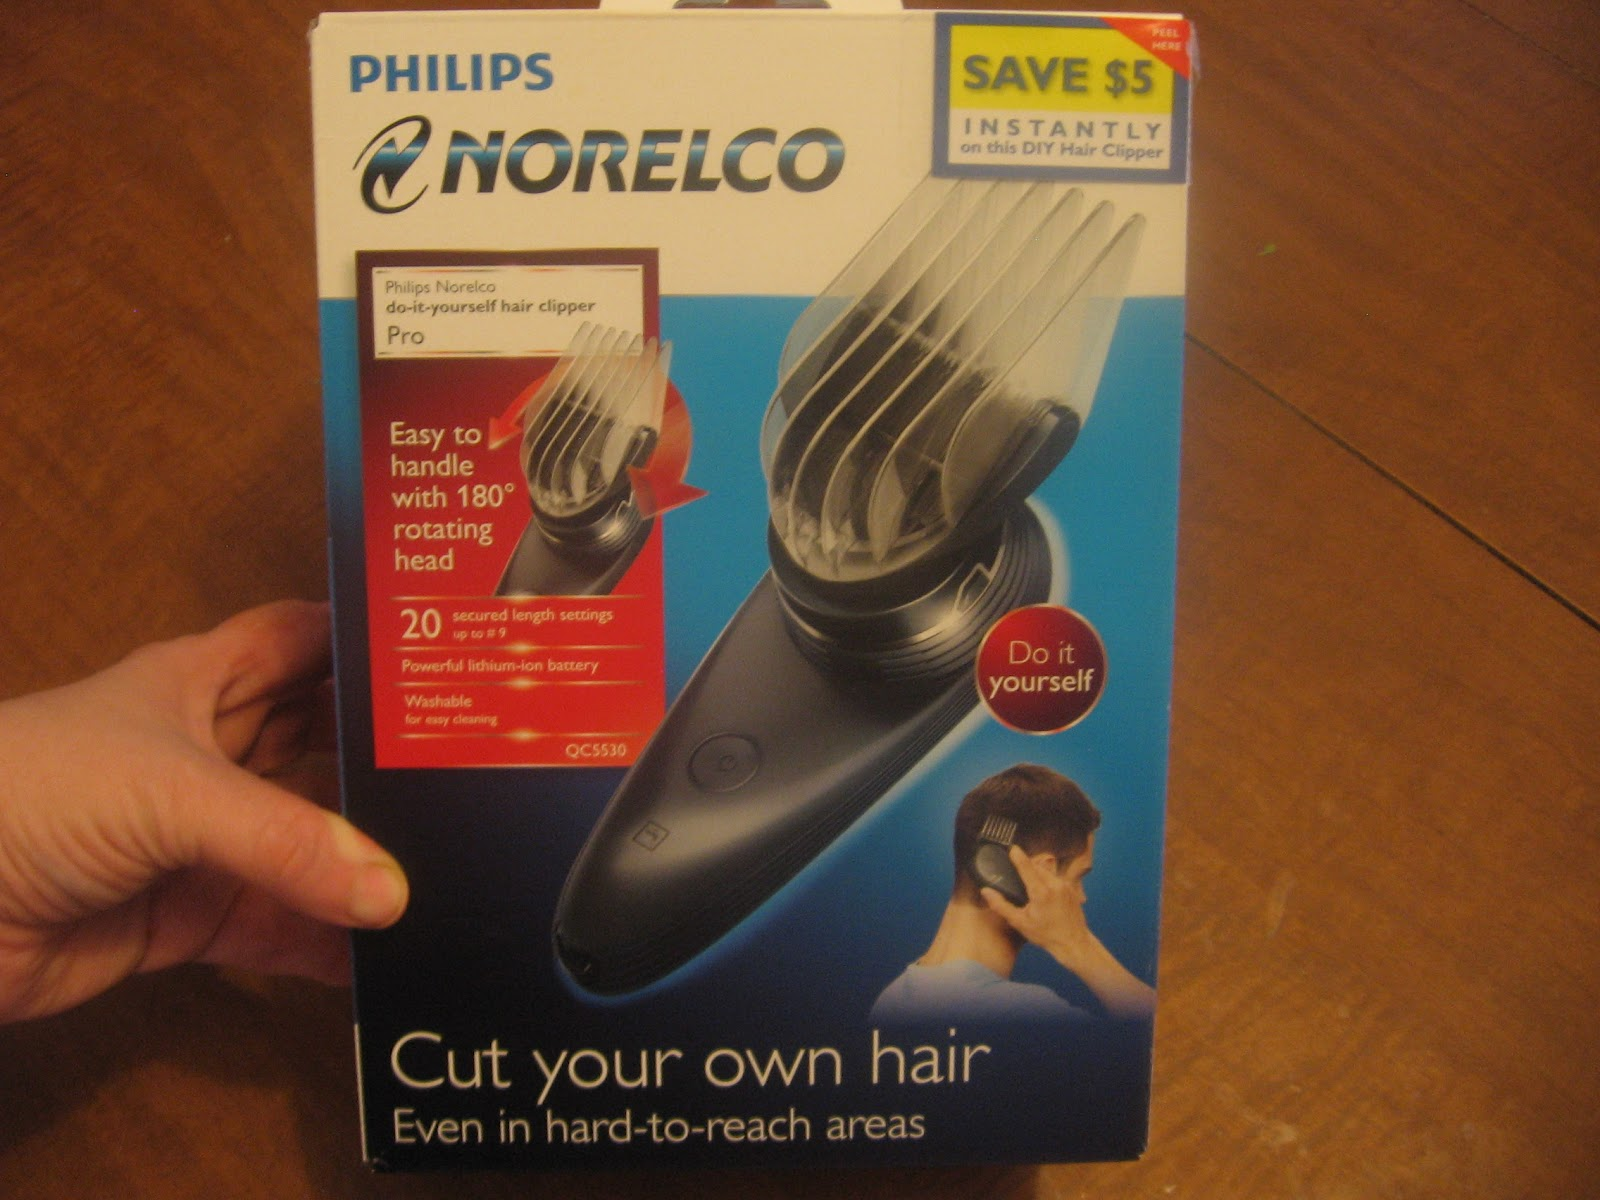 Tots and me growing up together philips norelco do it yourself philips norelco do it yourself hair clippers pro review solutioingenieria Choice Image